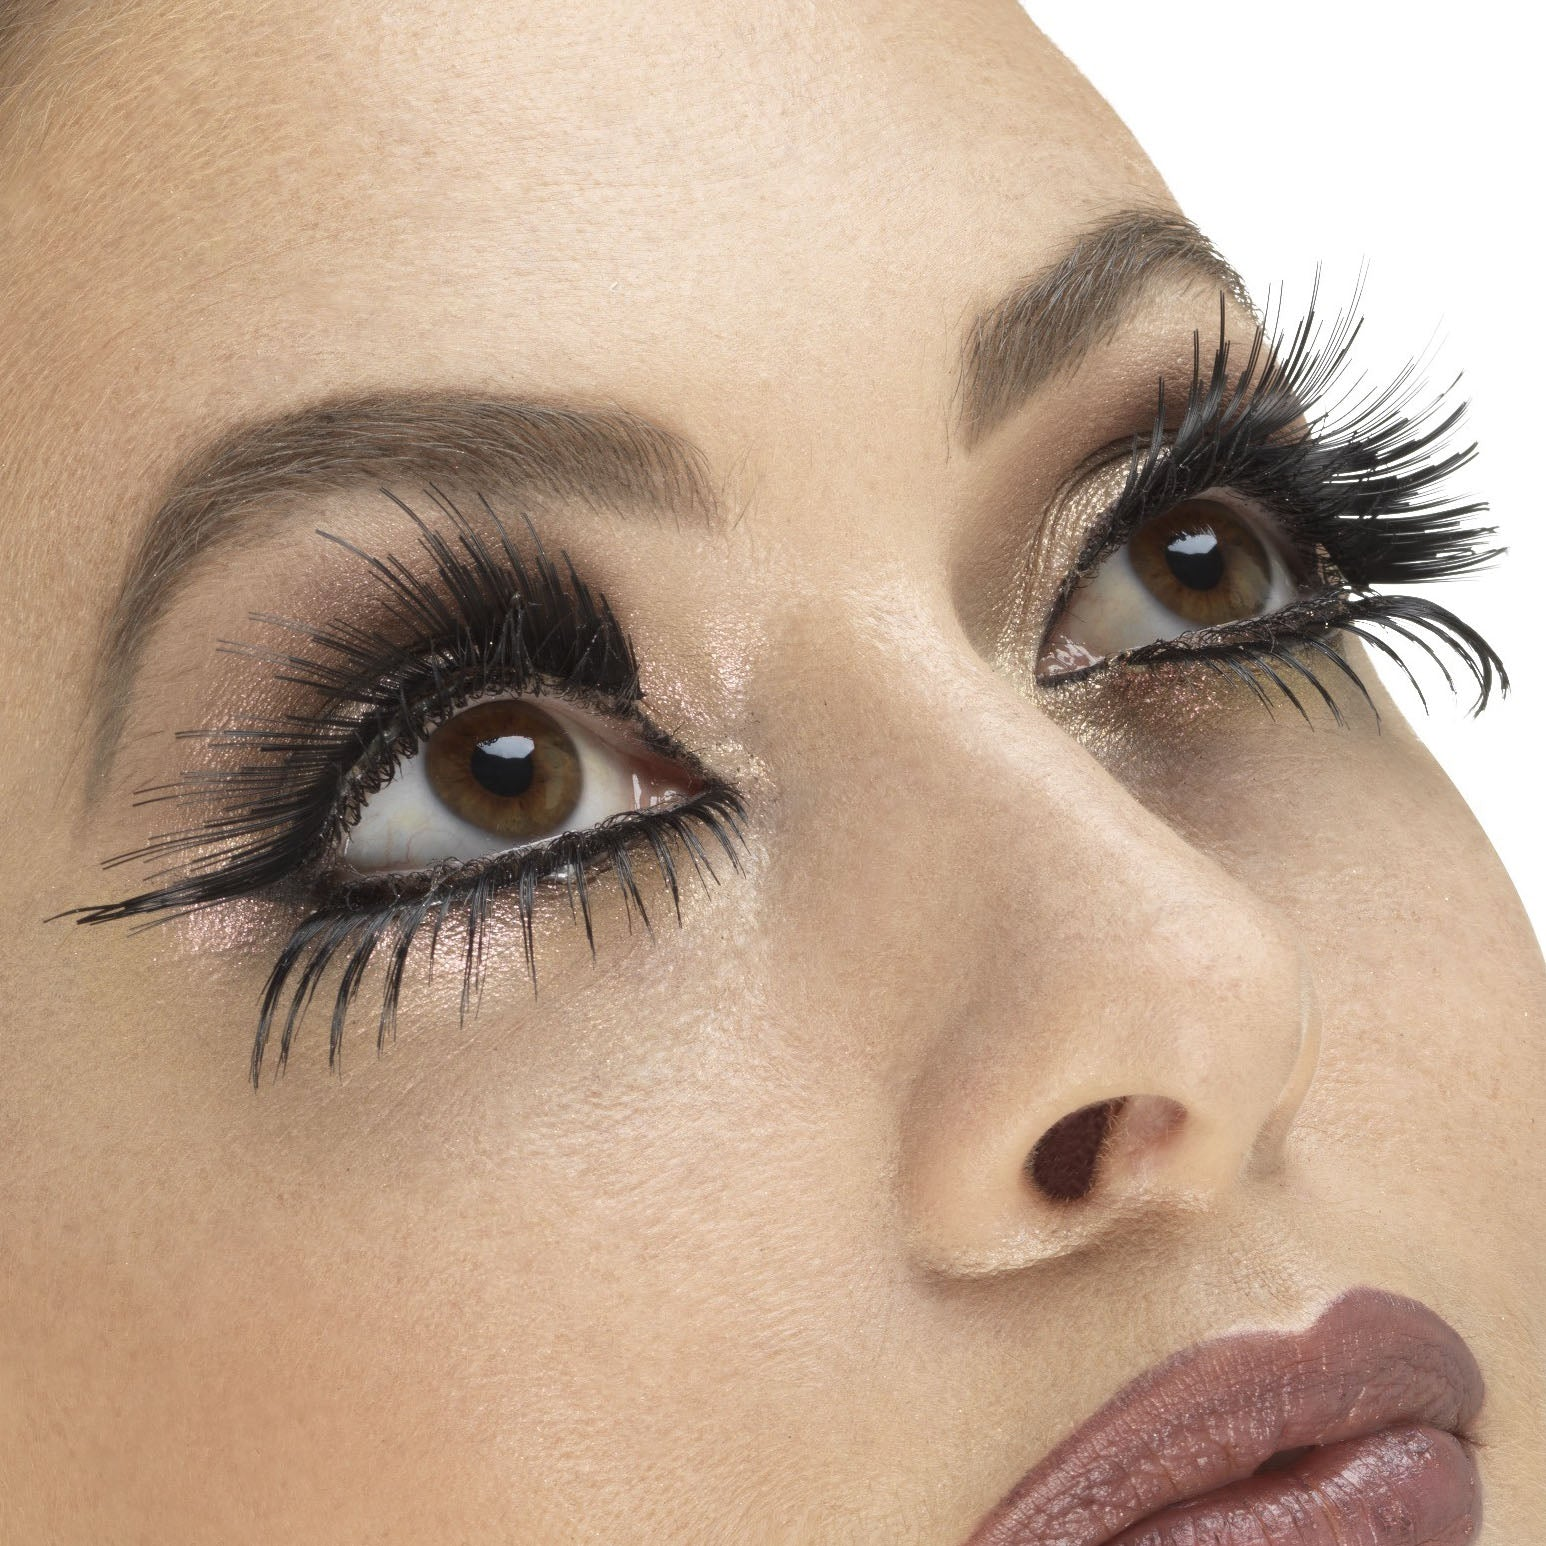 Fever False Eyelashes - Winged Black Top & Bottom Set - Red Carpet FX - Professional Makeup